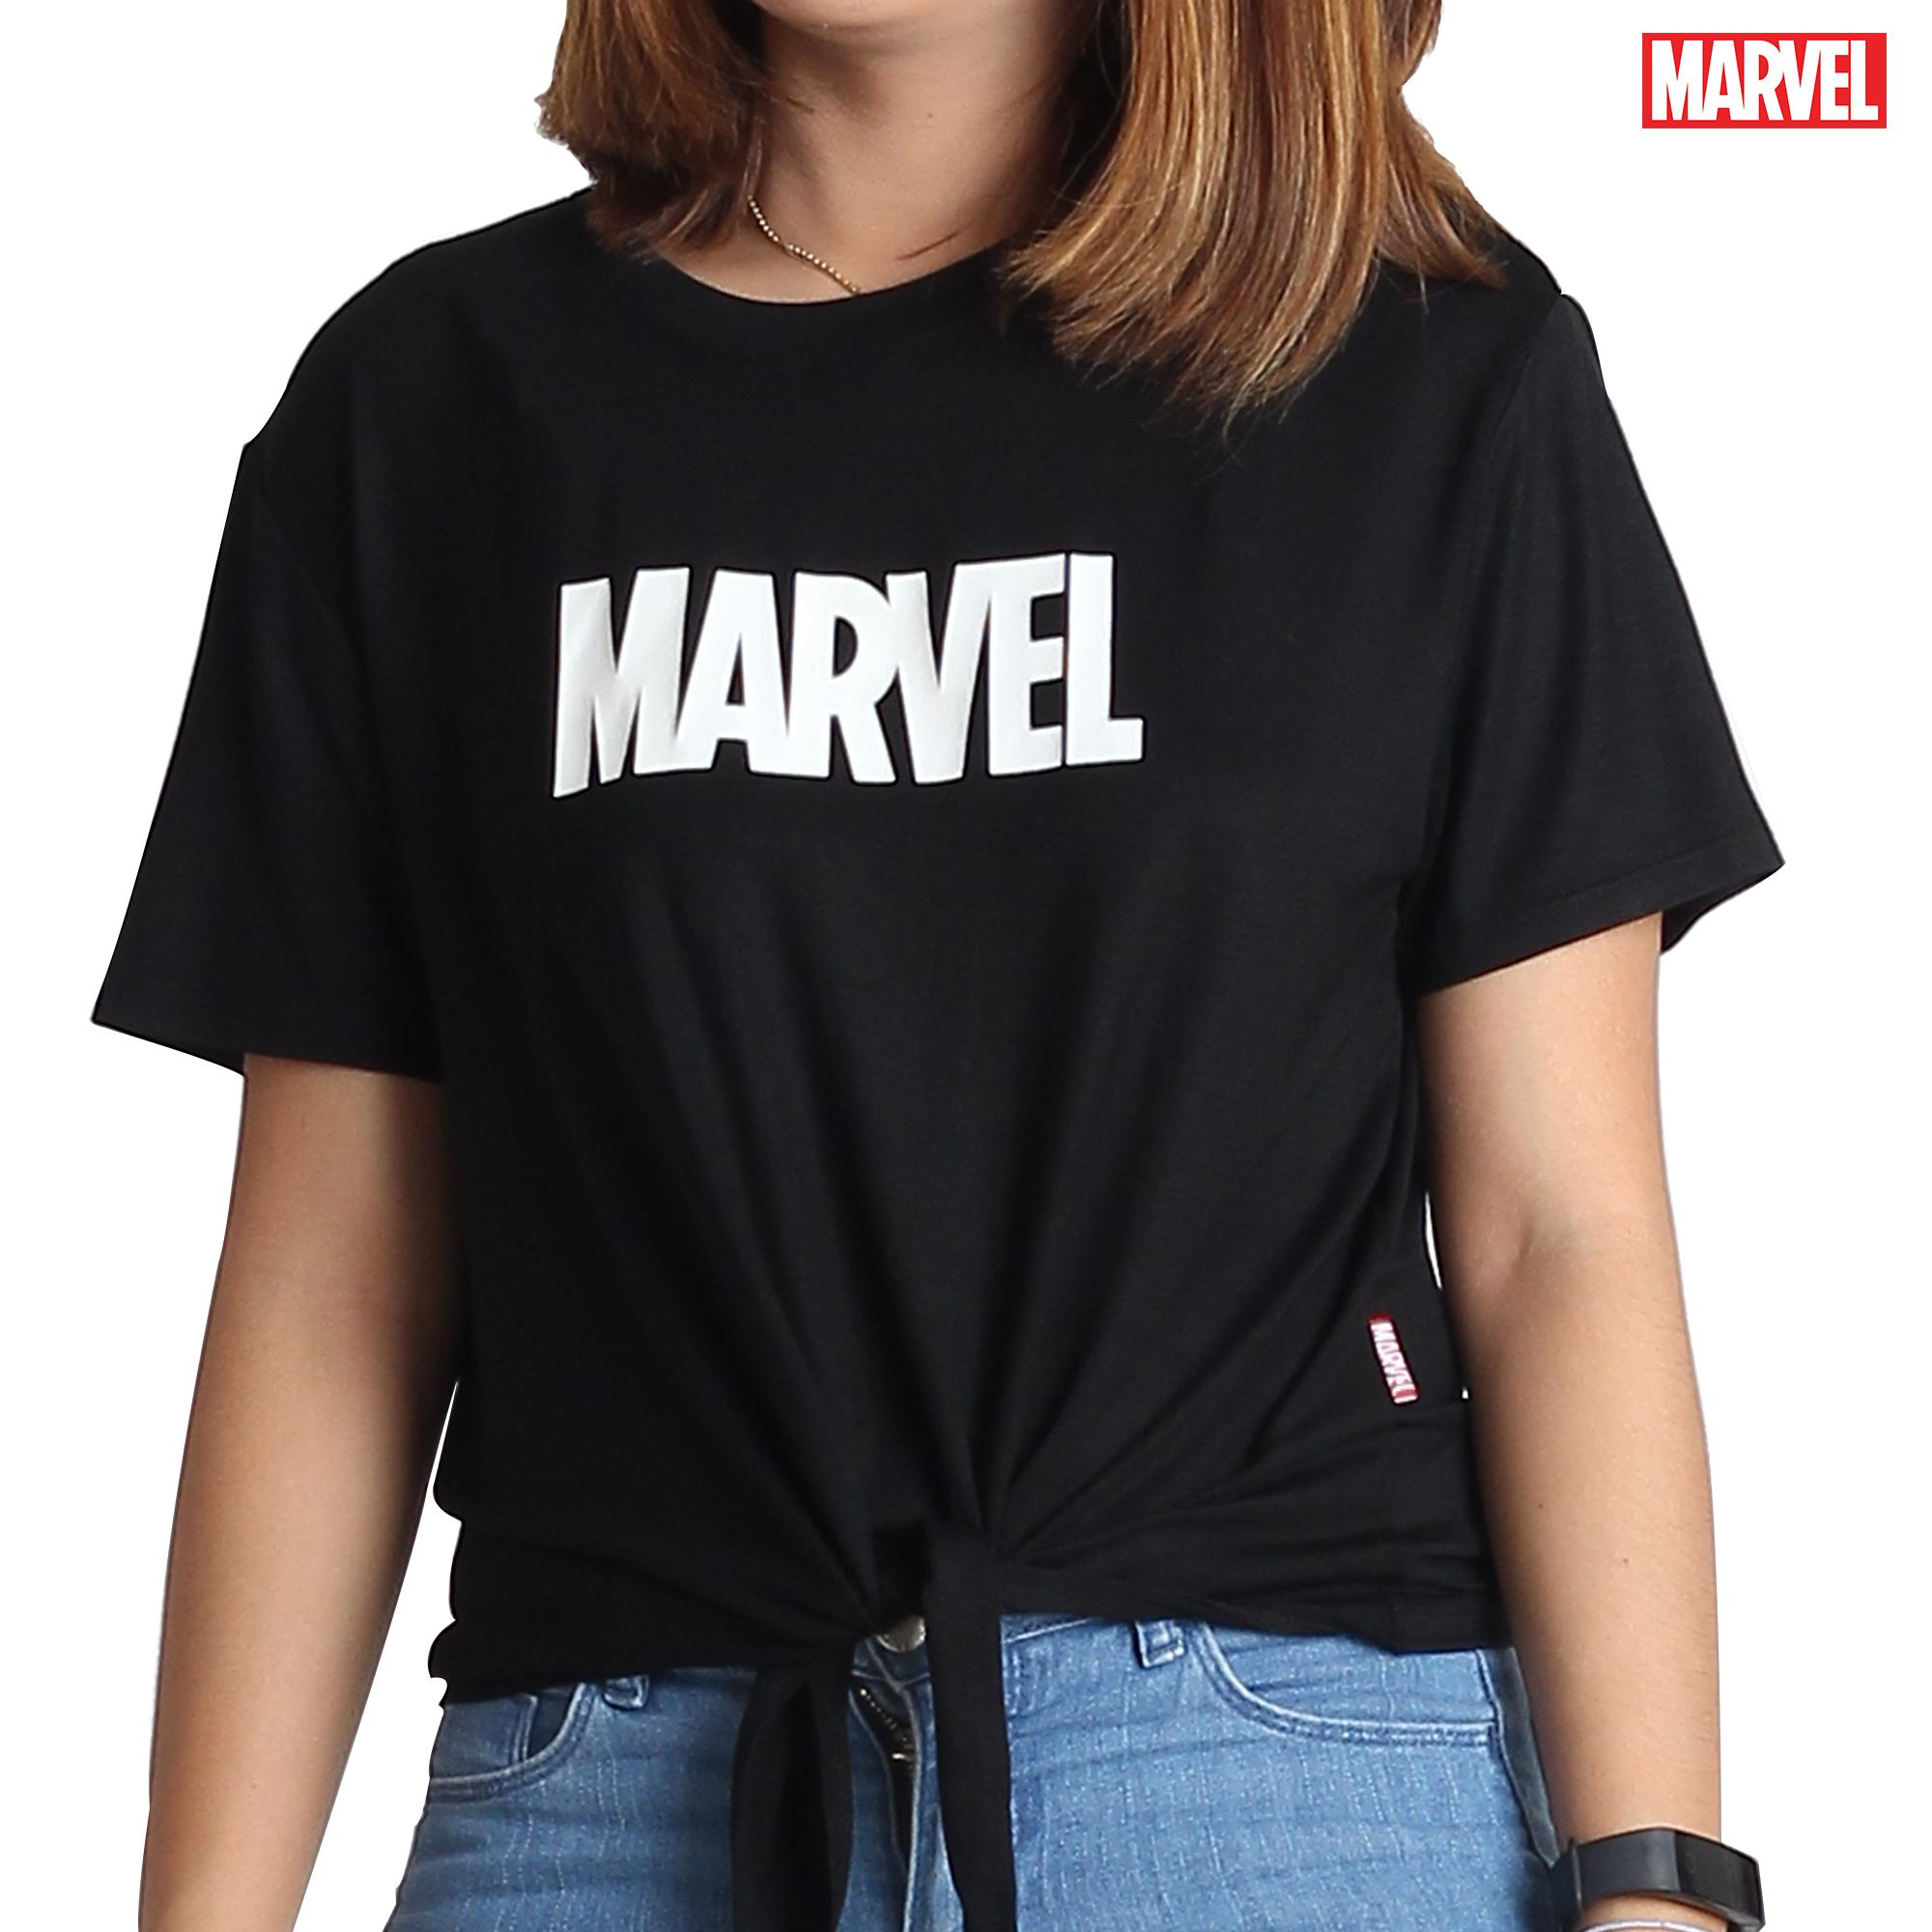 38349d706 Marvel Philippines: Marvel price list - Toys, Action Figures ...